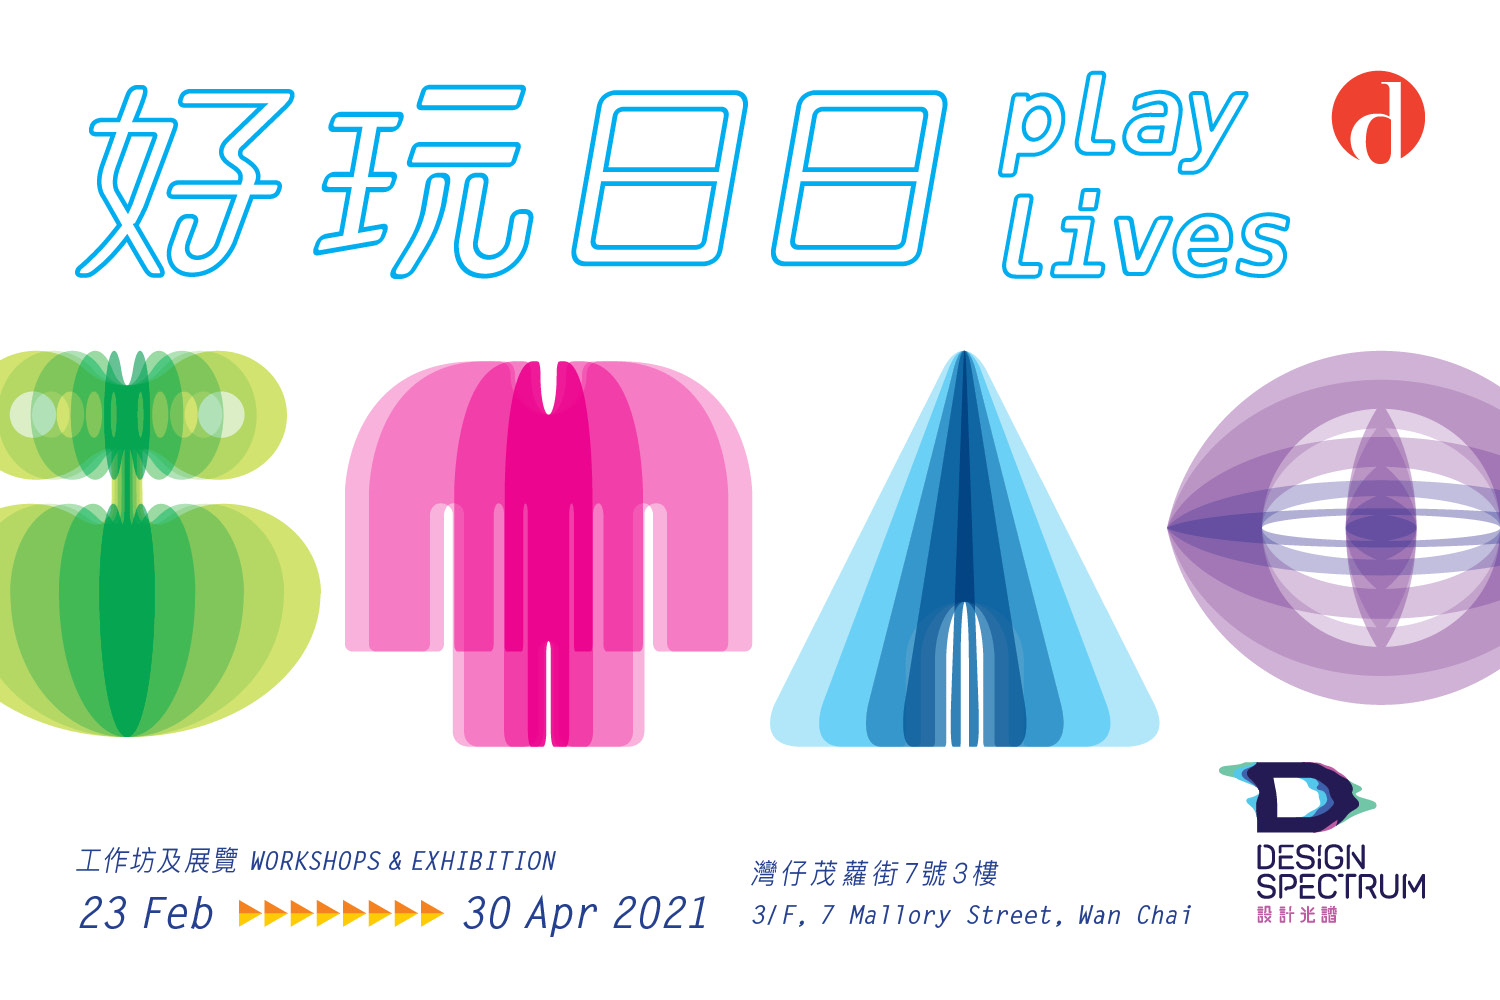 Design Spectrum of Hong Kong Design Centre Presents: PLAY LIVES Exhibition Playtime Now! Explore the Infinite Possibilities of Play and Design